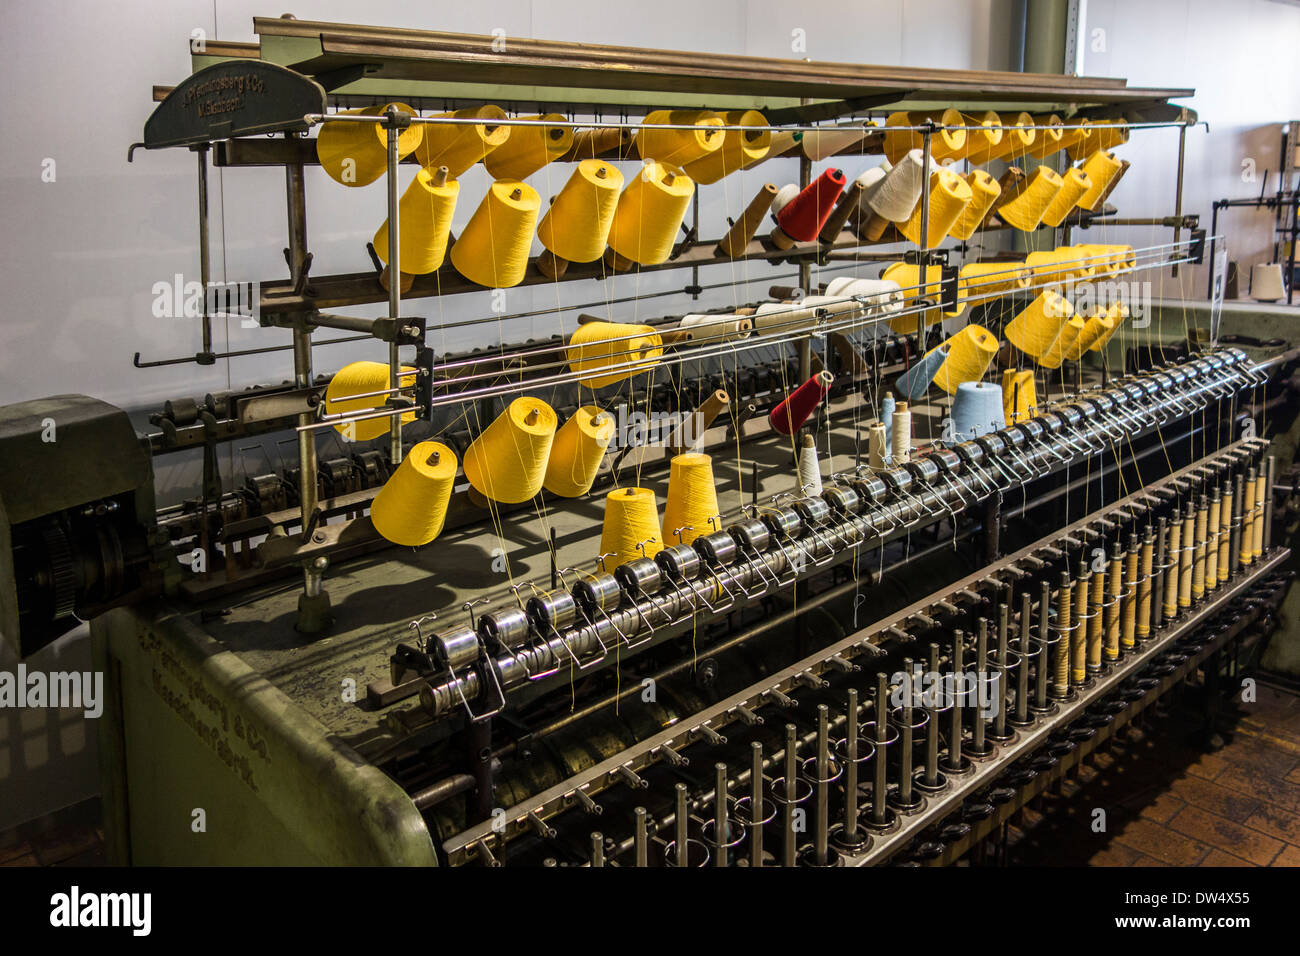 Colourful bobbins with yarn on twisting frame in cotton mill at MIAT, industrial archaeology museum, Ghent, Belgium - Stock Image